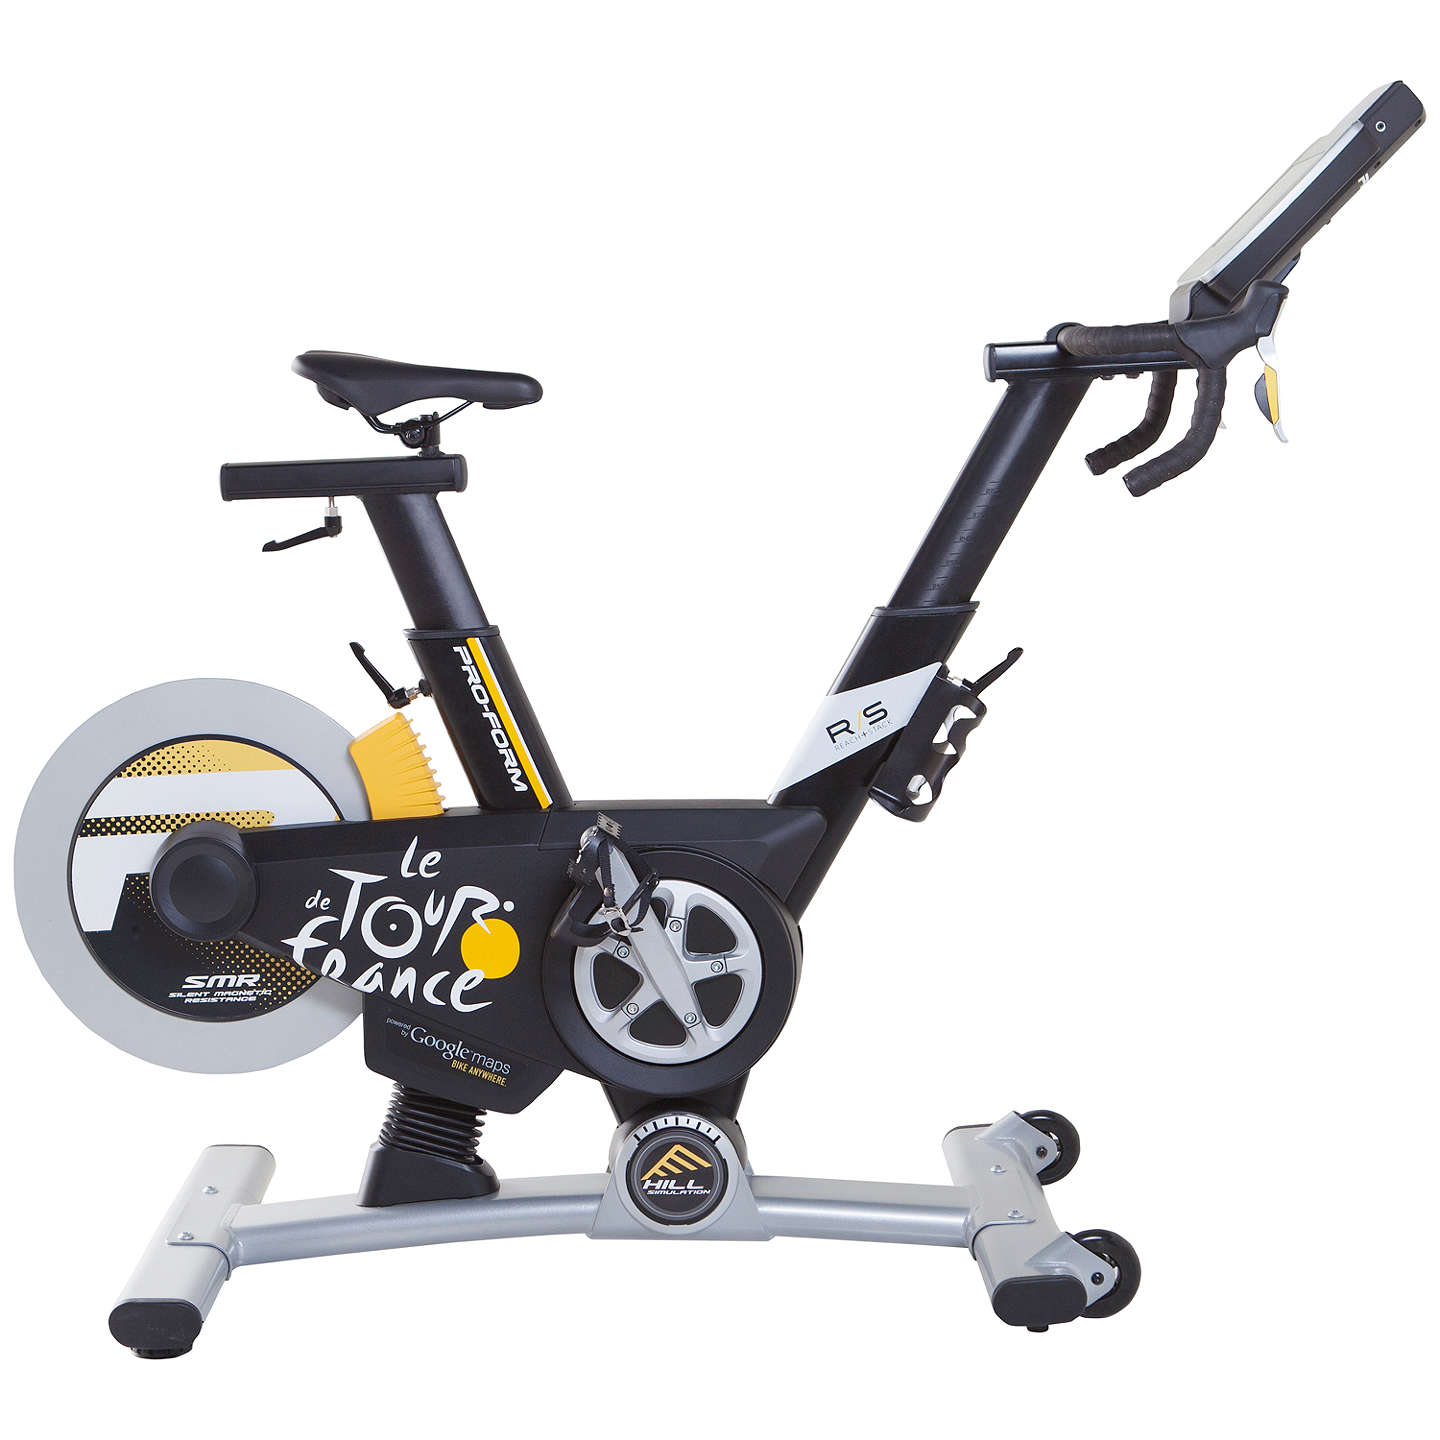 ProForm Tour De France Pro 5.0 Indoor Studio Bike, Black